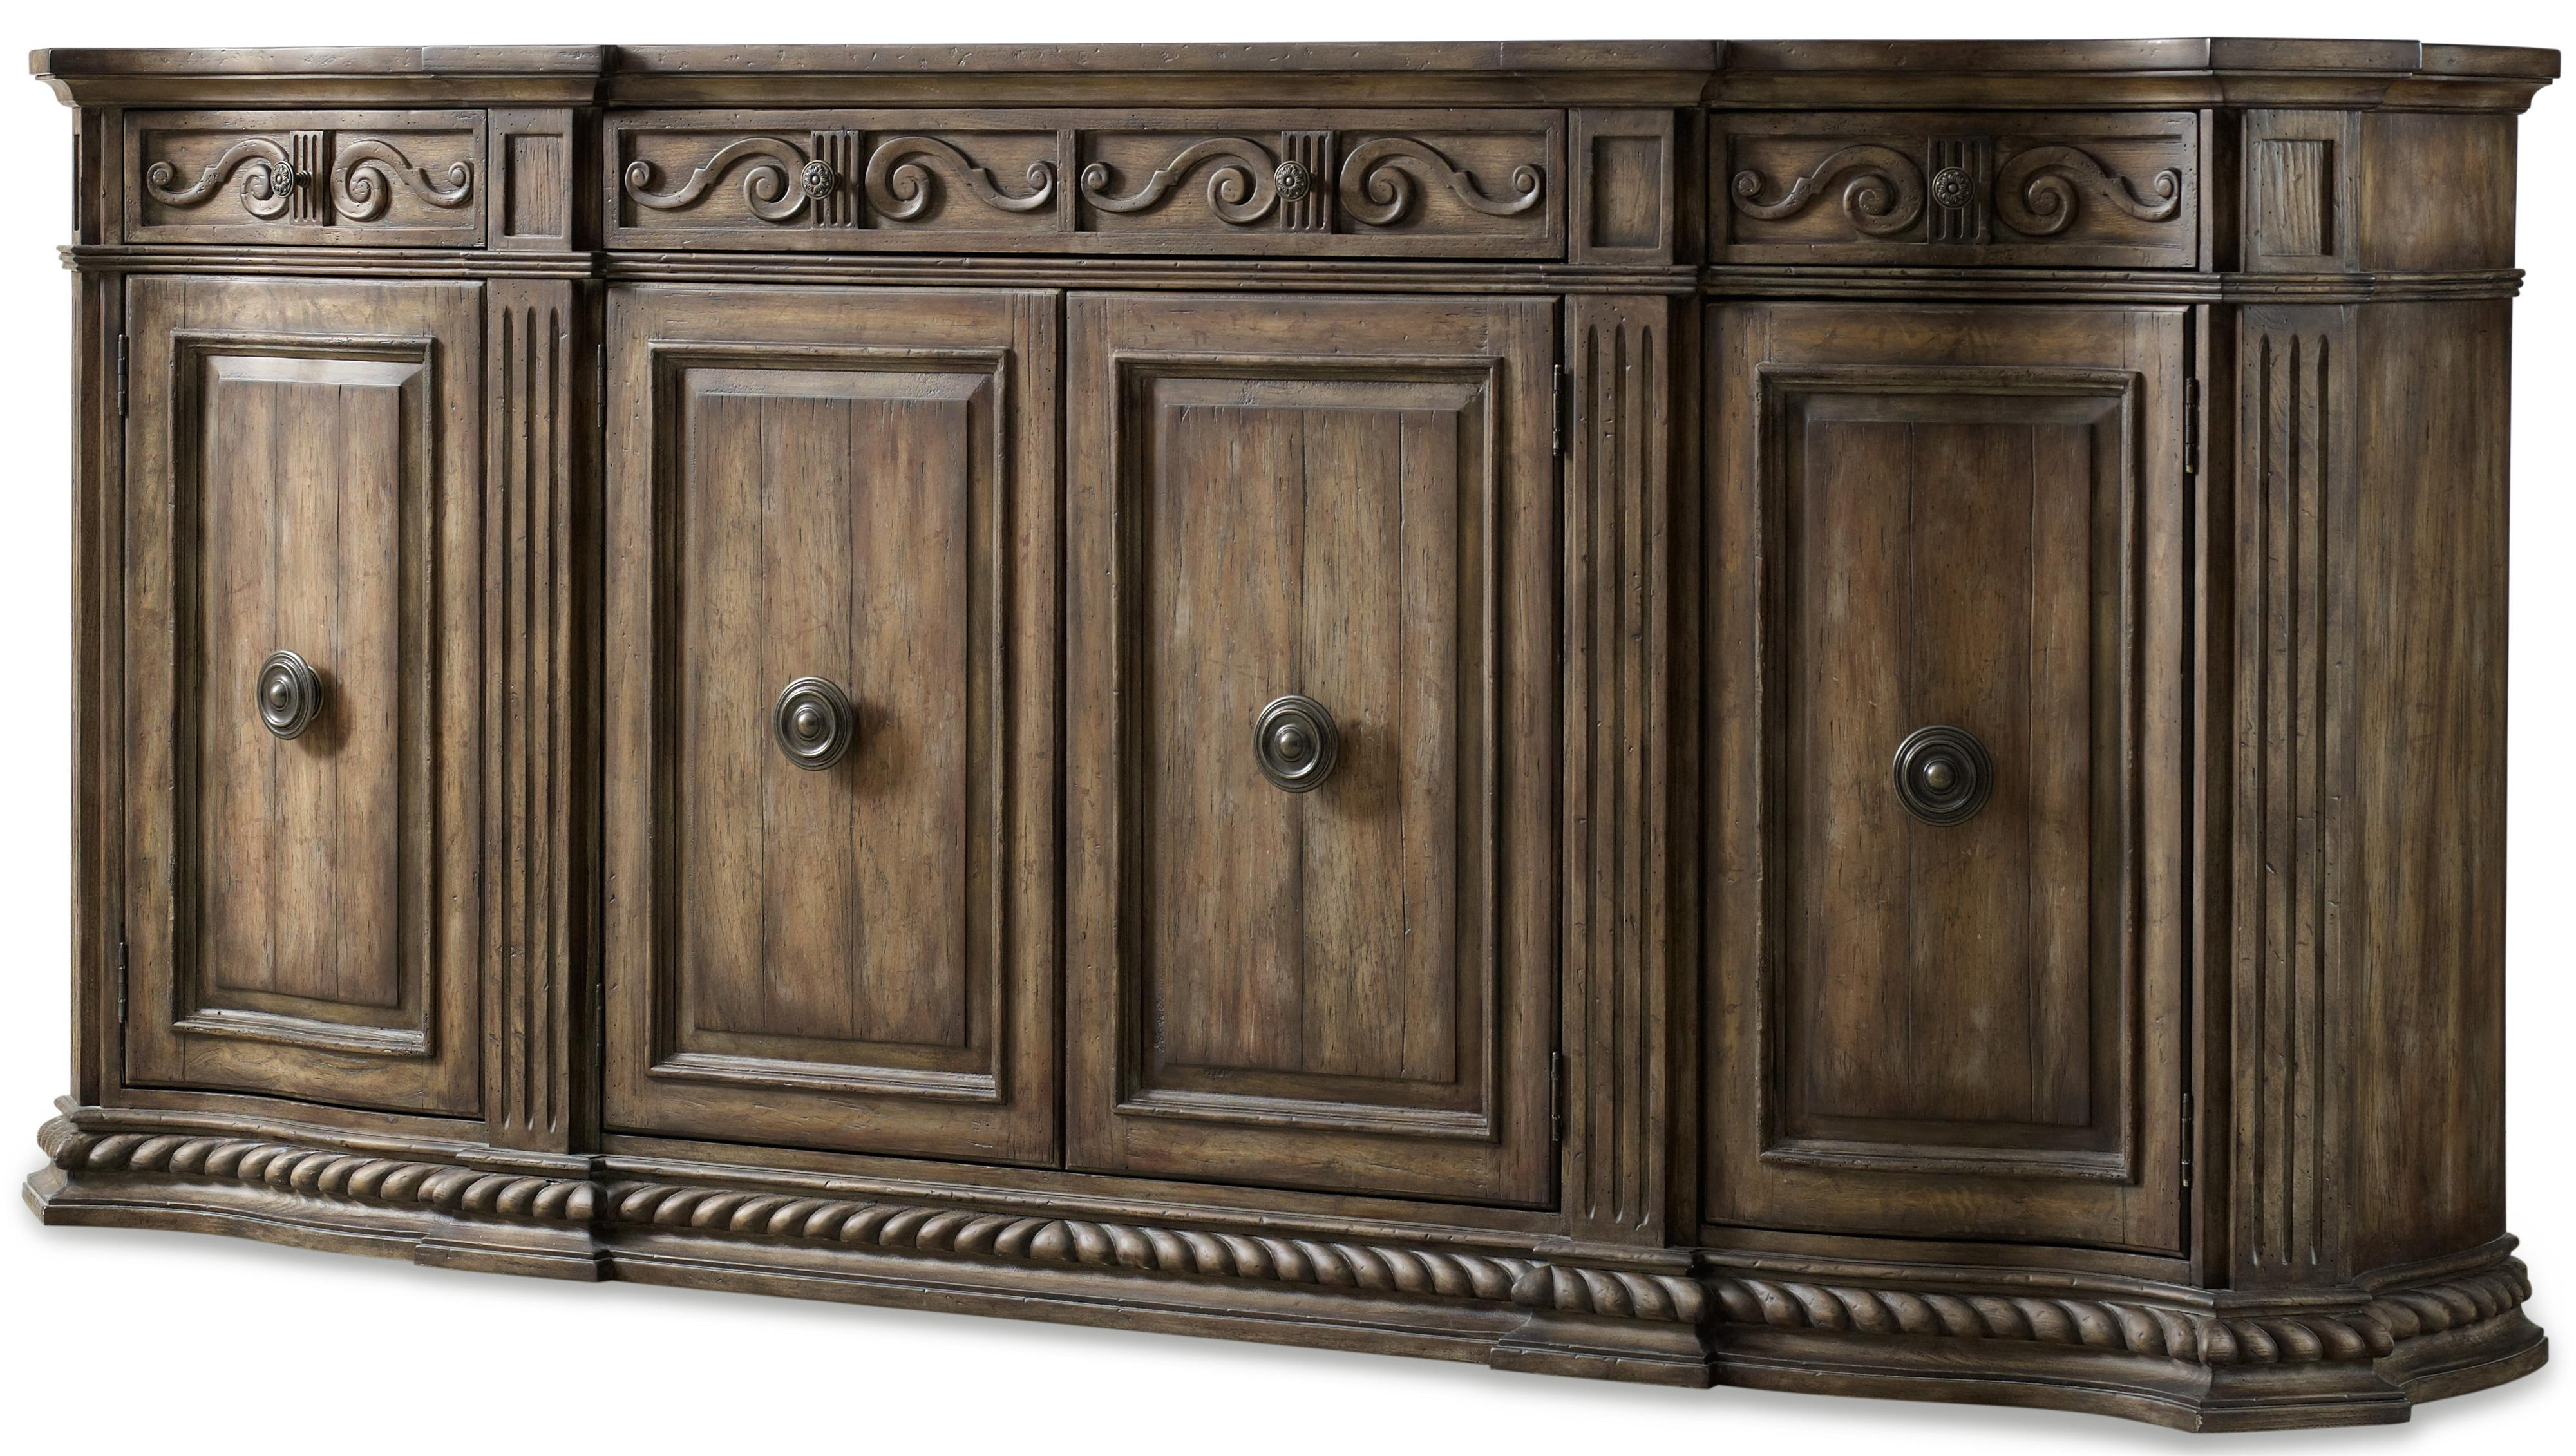 Recent Hooker Furniture Rhapsody 5070 85002 96 Inch Credenza With Rope Regarding Bale Rustic Grey Sideboards (View 7 of 20)